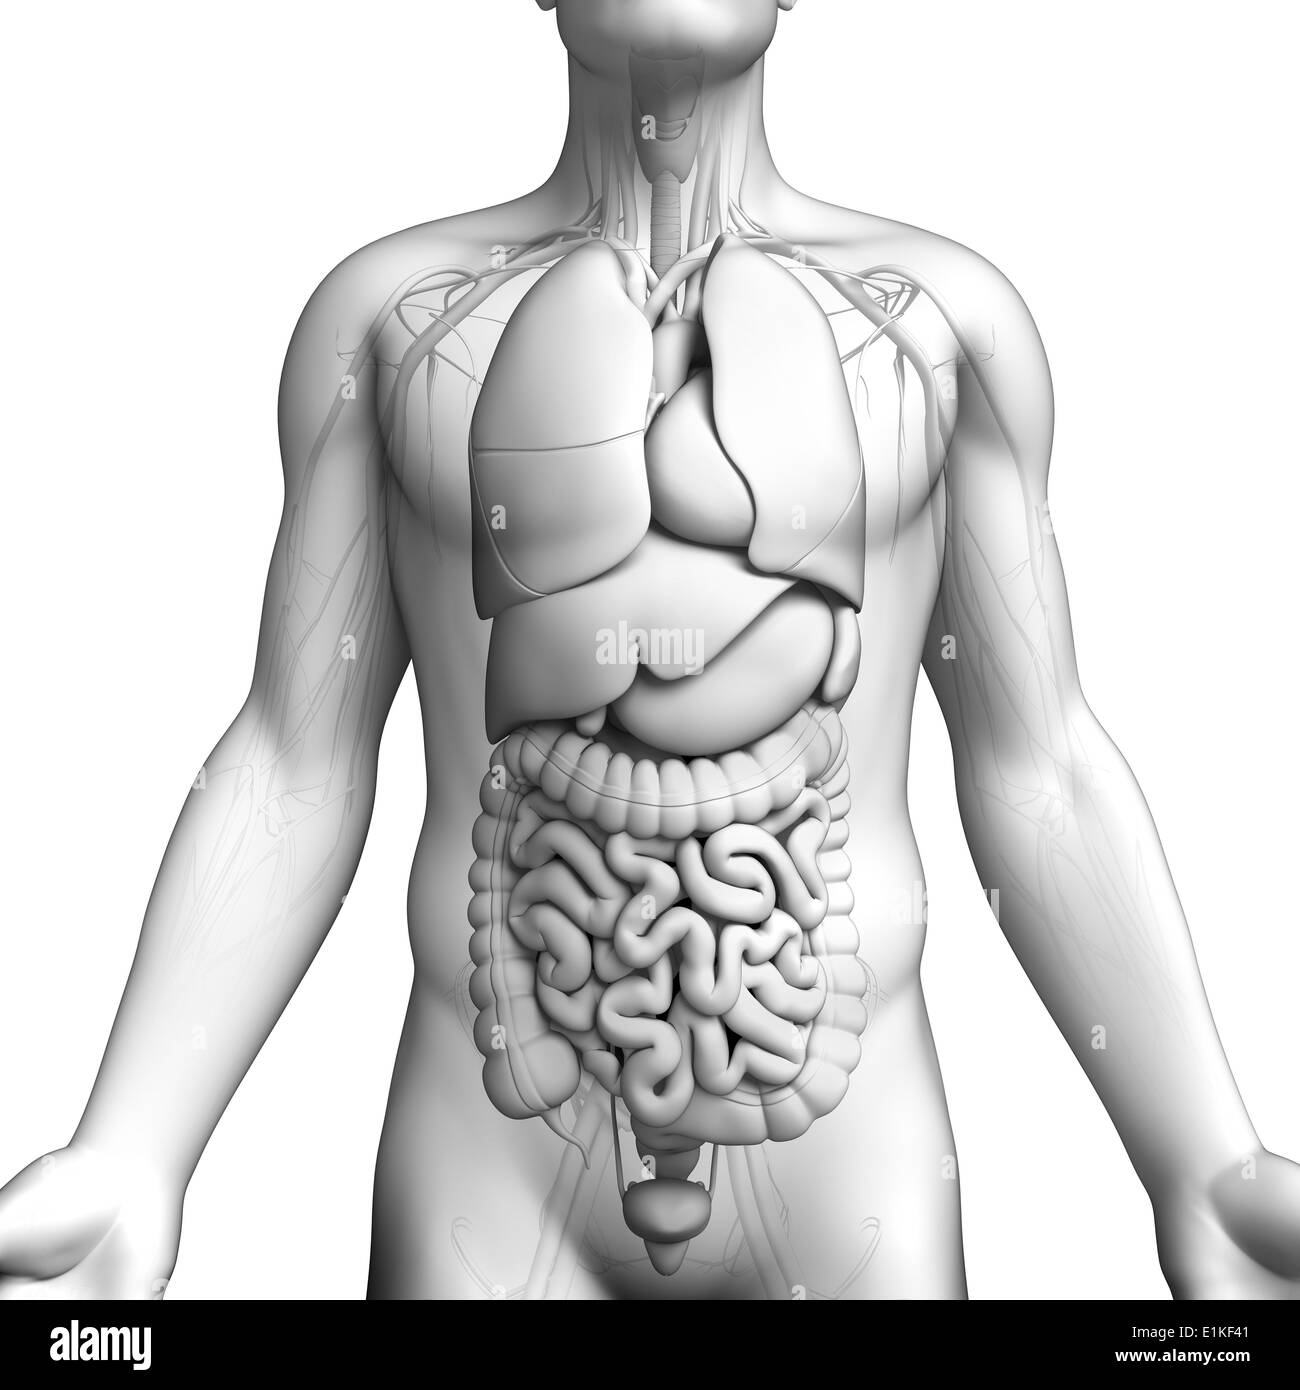 Rectum Black and White Stock Photos & Images - Alamy